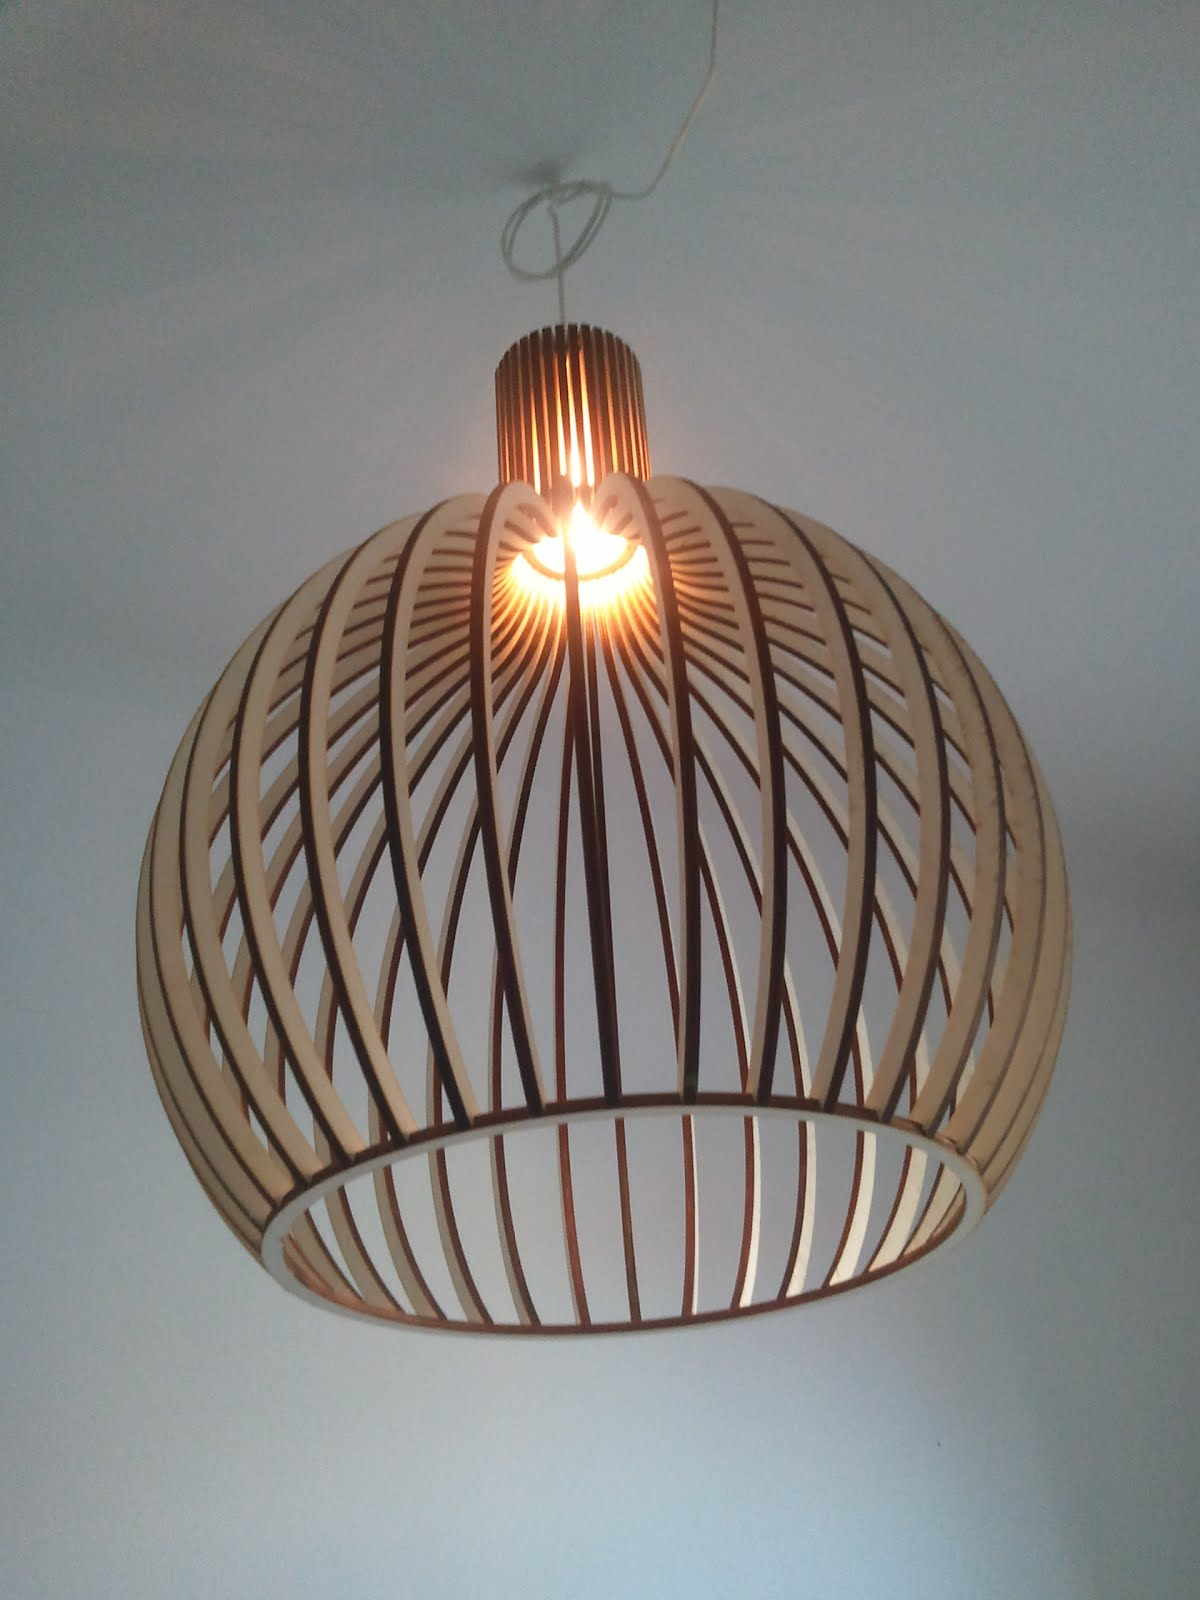 plywood lighting. If You Want The Source Files So That Can Cut One Your Self Just Drop Me A Line And I\u0027ll Send Them To You. Plywood Lighting